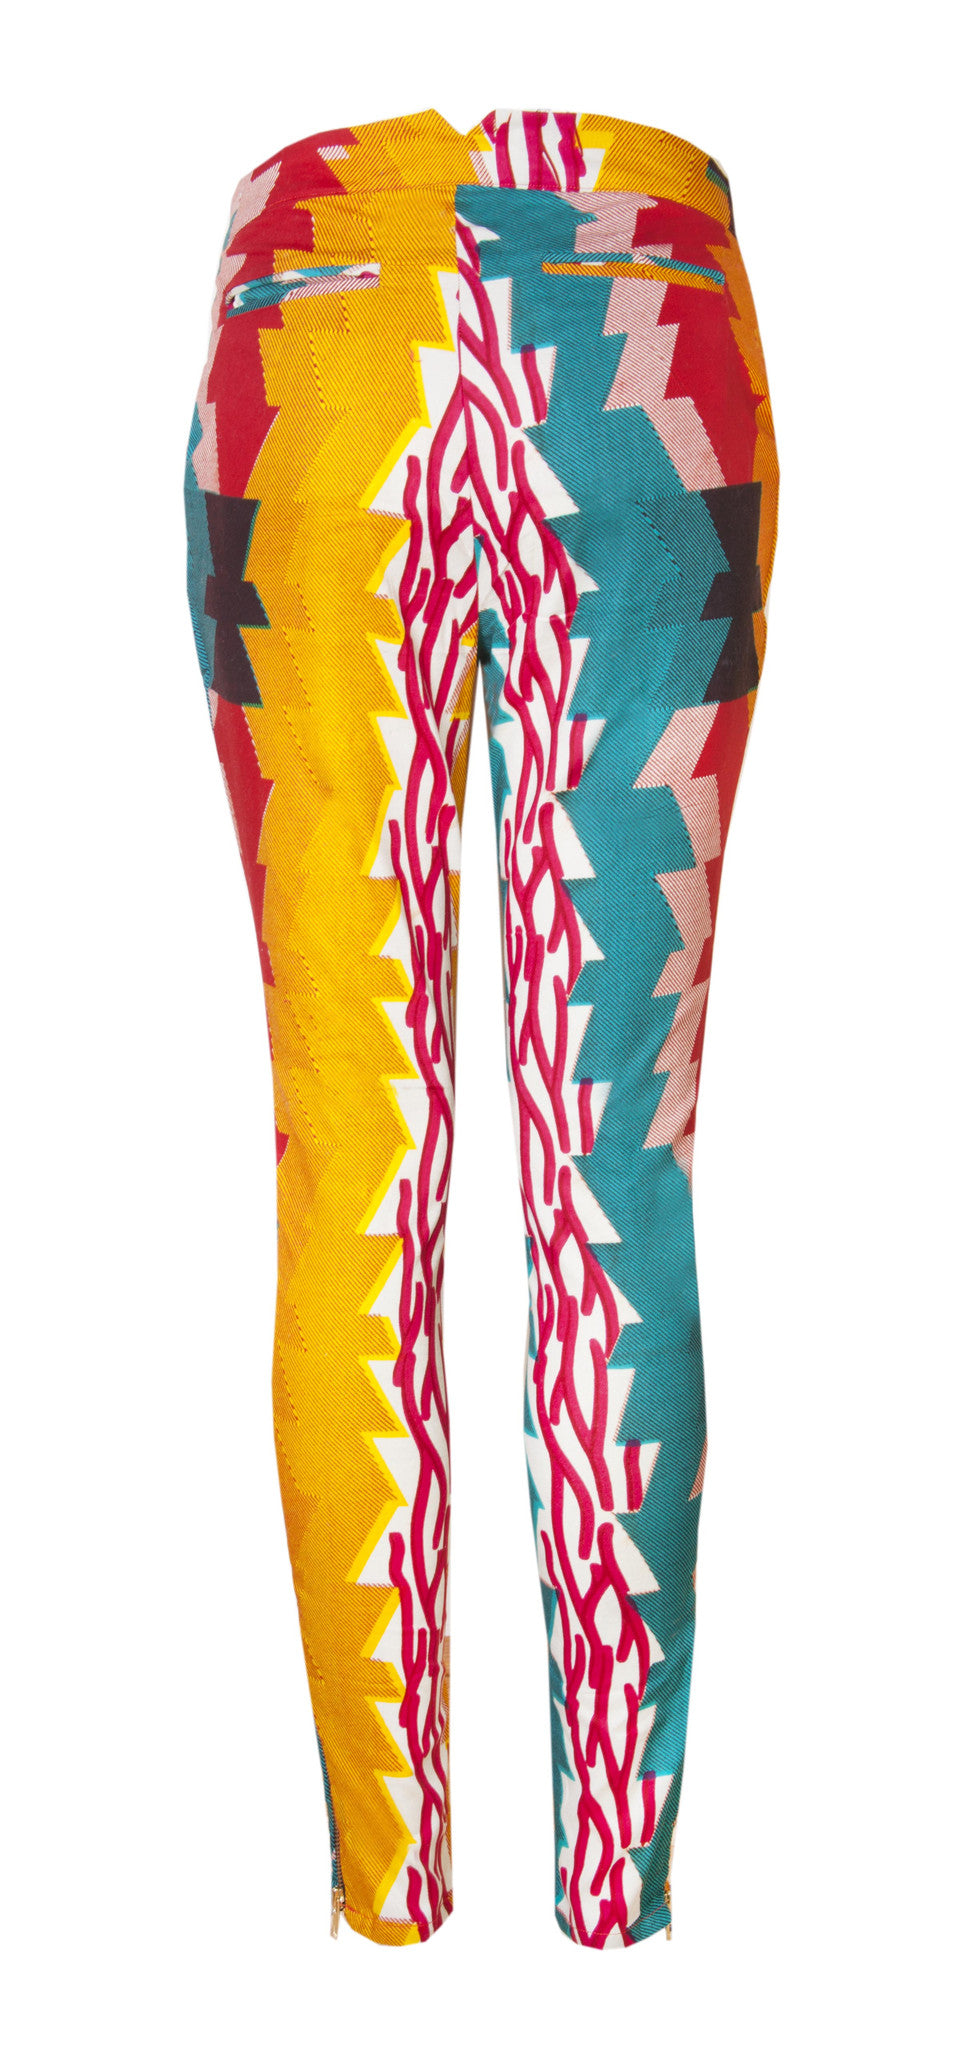 Stardust African print trousers - OHEMA OHENE AFRICAN INSPIRED FASHION  - 2